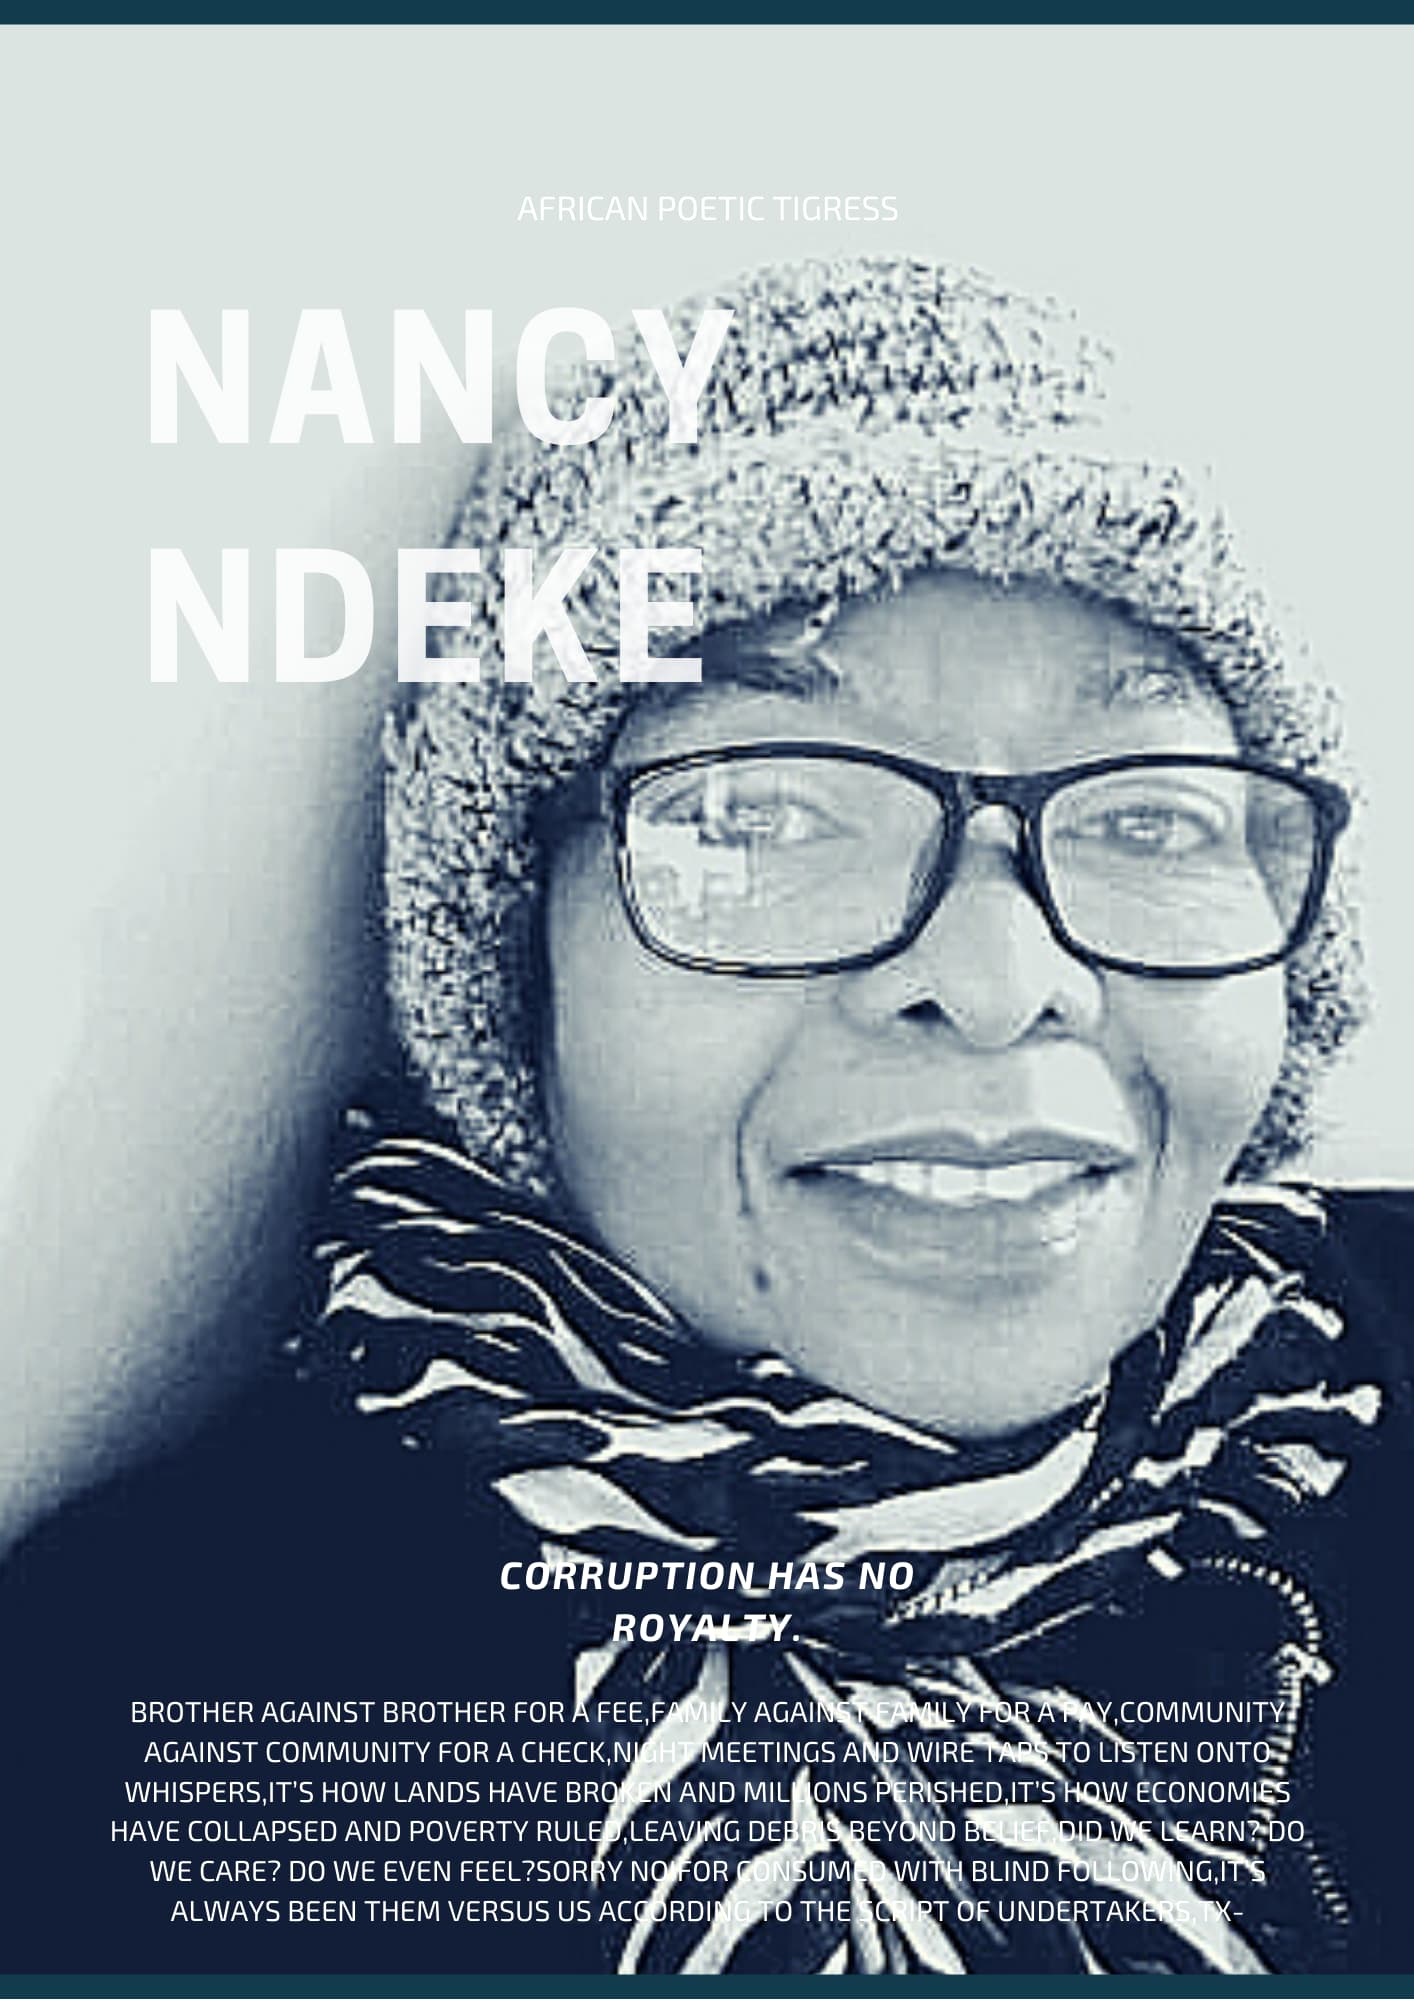 A reading of Nancy Ndeke's Poem 'Corruption Has No Royalty'